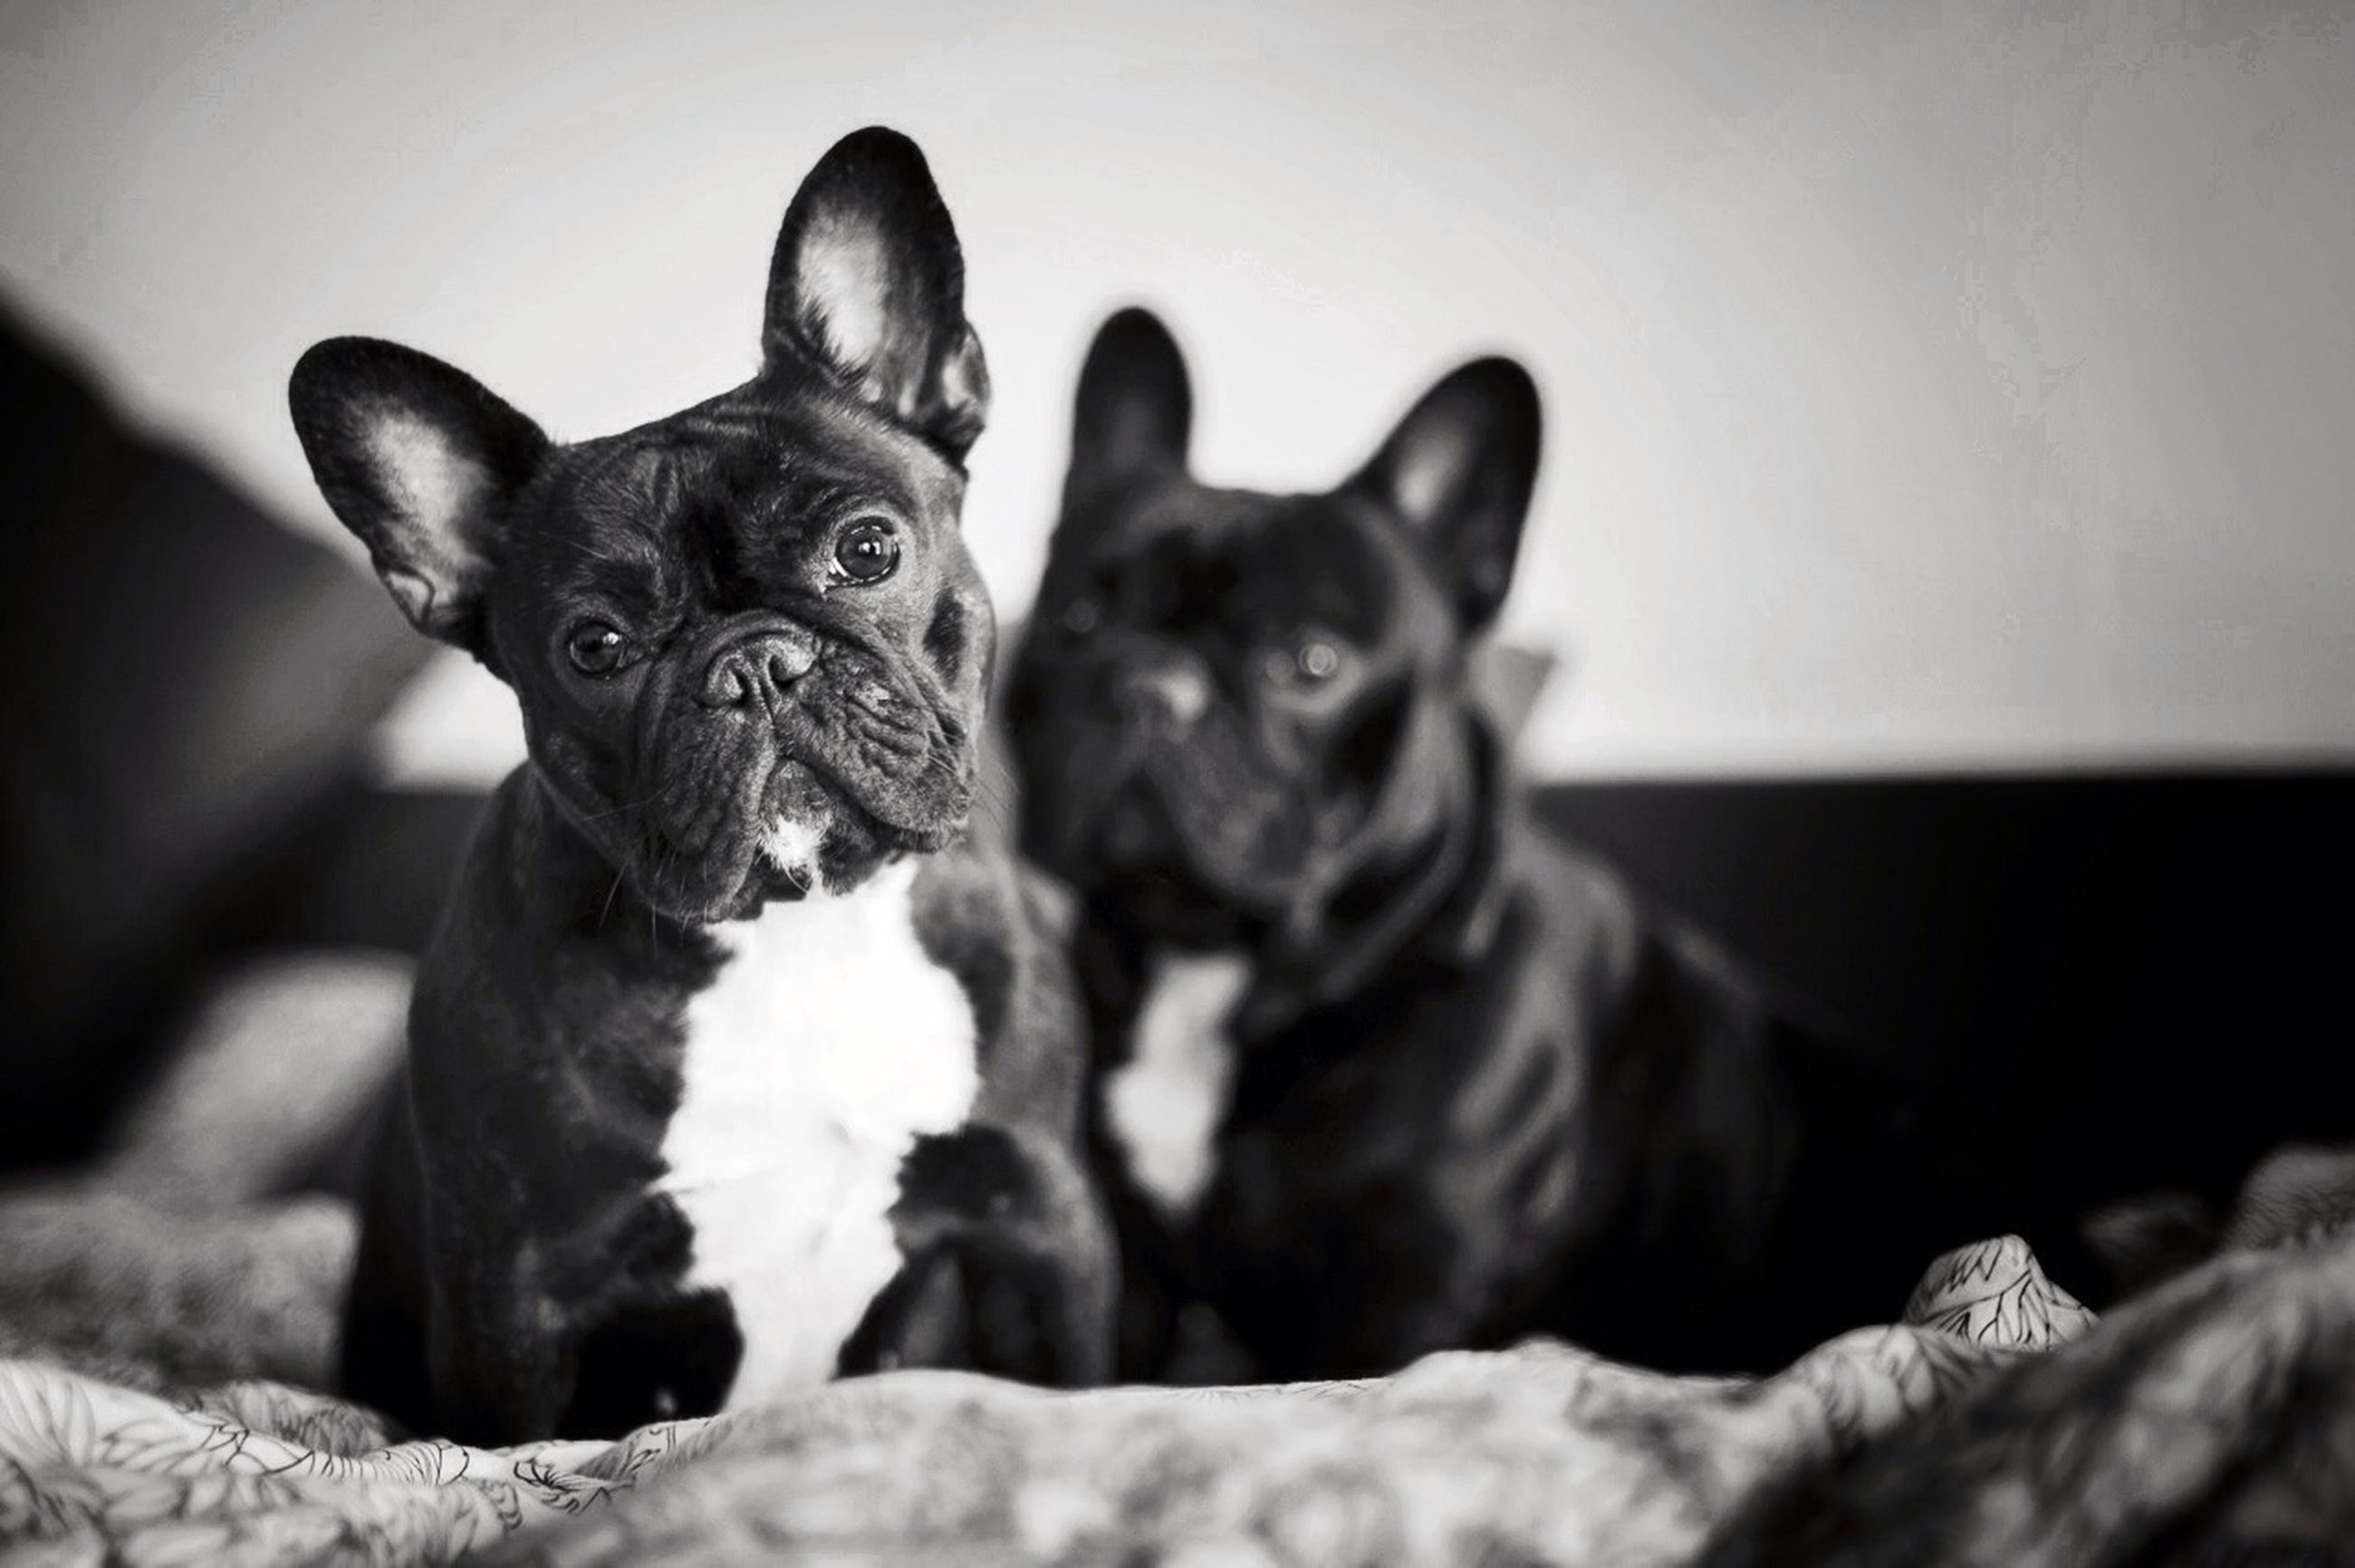 domestic animals, pets, animal themes, mammal, one animal, dog, portrait, looking at camera, indoors, two animals, togetherness, relaxation, black color, home interior, sitting, lying down, resting, young animal, pet collar, close-up